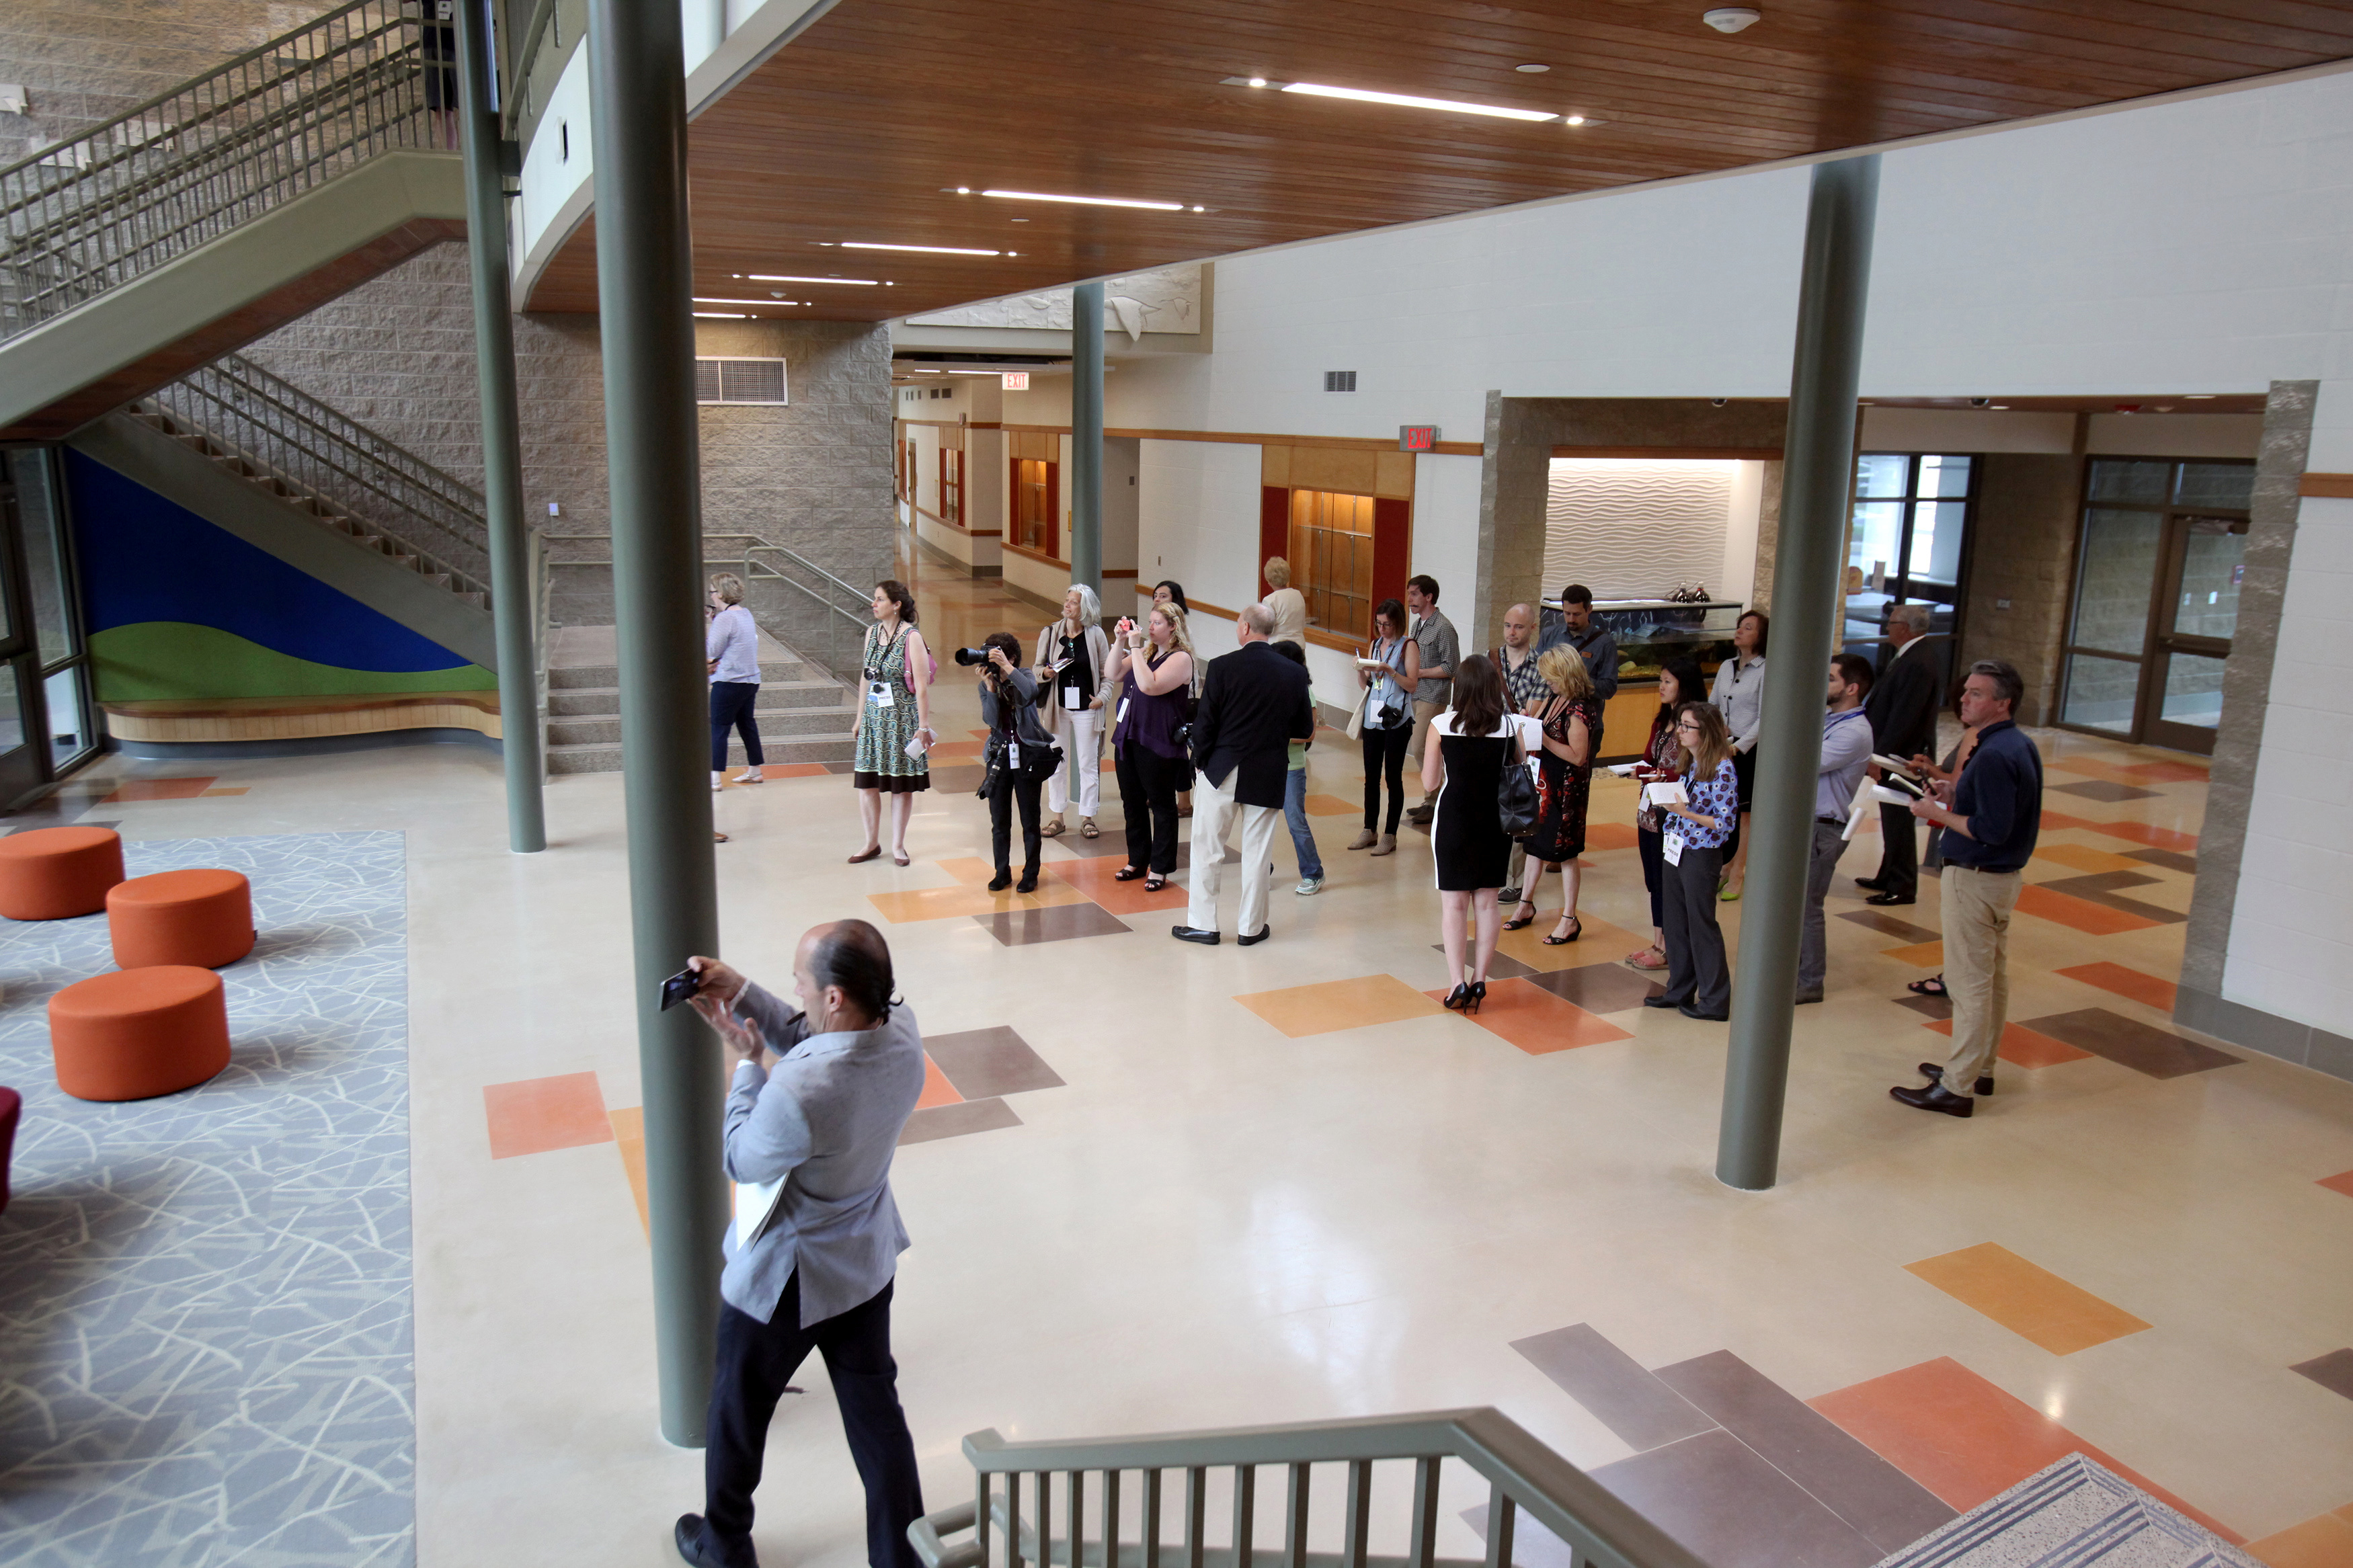 Members of the media tour the newly constructed Sandy Hook Elementary School in Newtown, Connecticut, on July 29, 2016. Photo by Michelle McLoughlin/Reuters